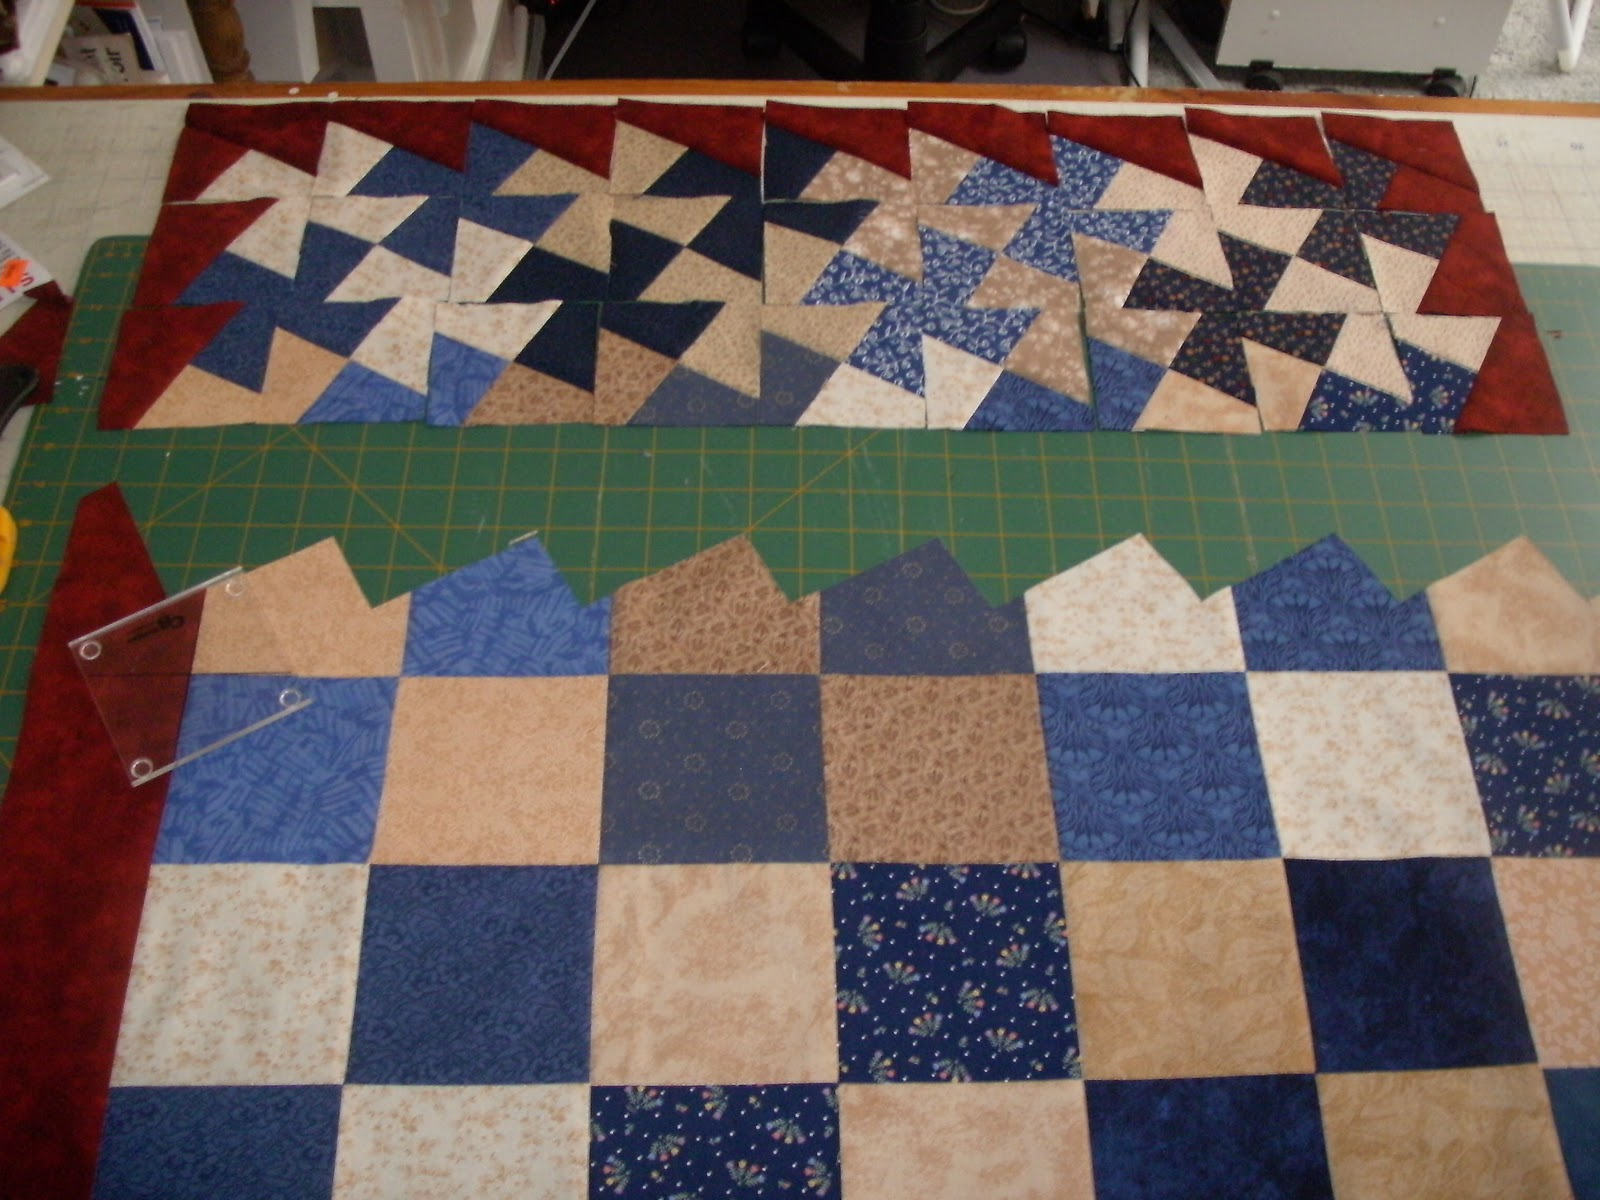 Sunshower Quilts: Fun with the Lil' Twister Ruler! : twister quilt ruler - Adamdwight.com